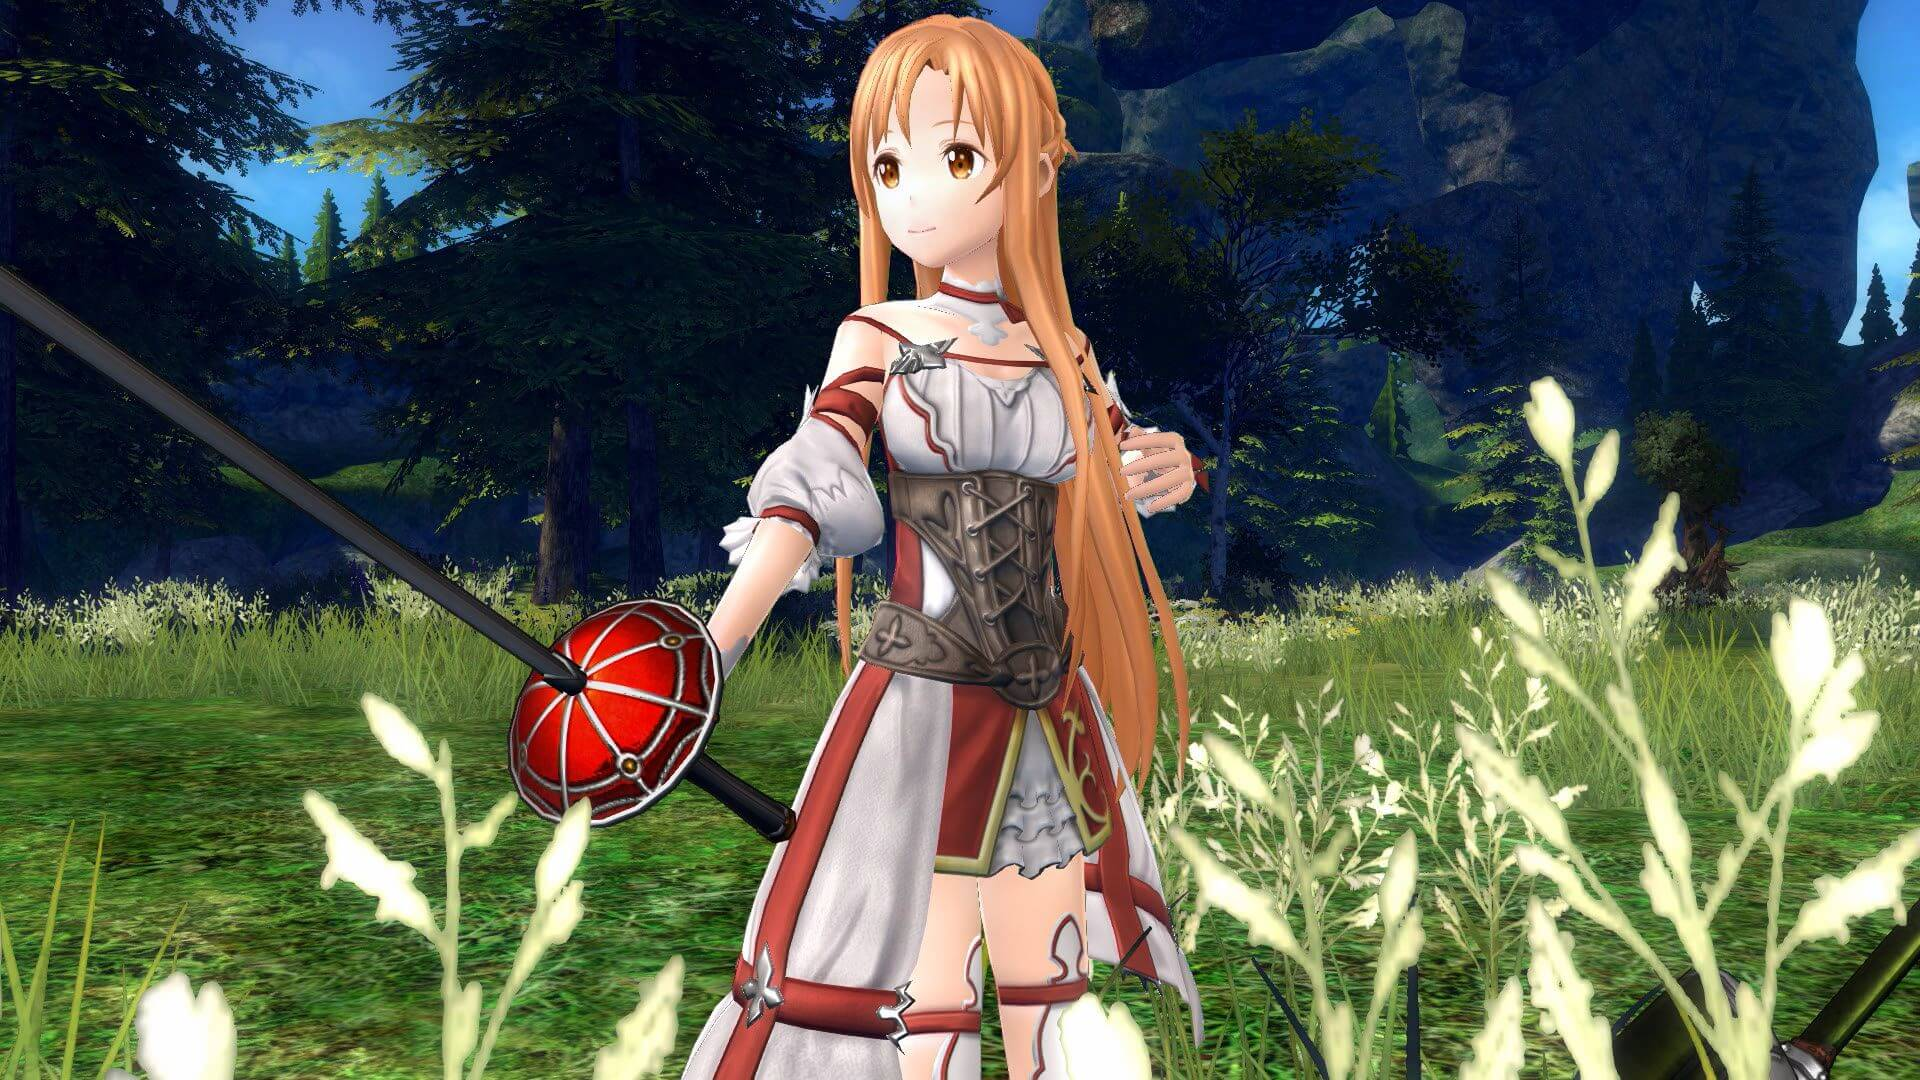 Sword Art Online: Hollow Realization Coming to America in 2016